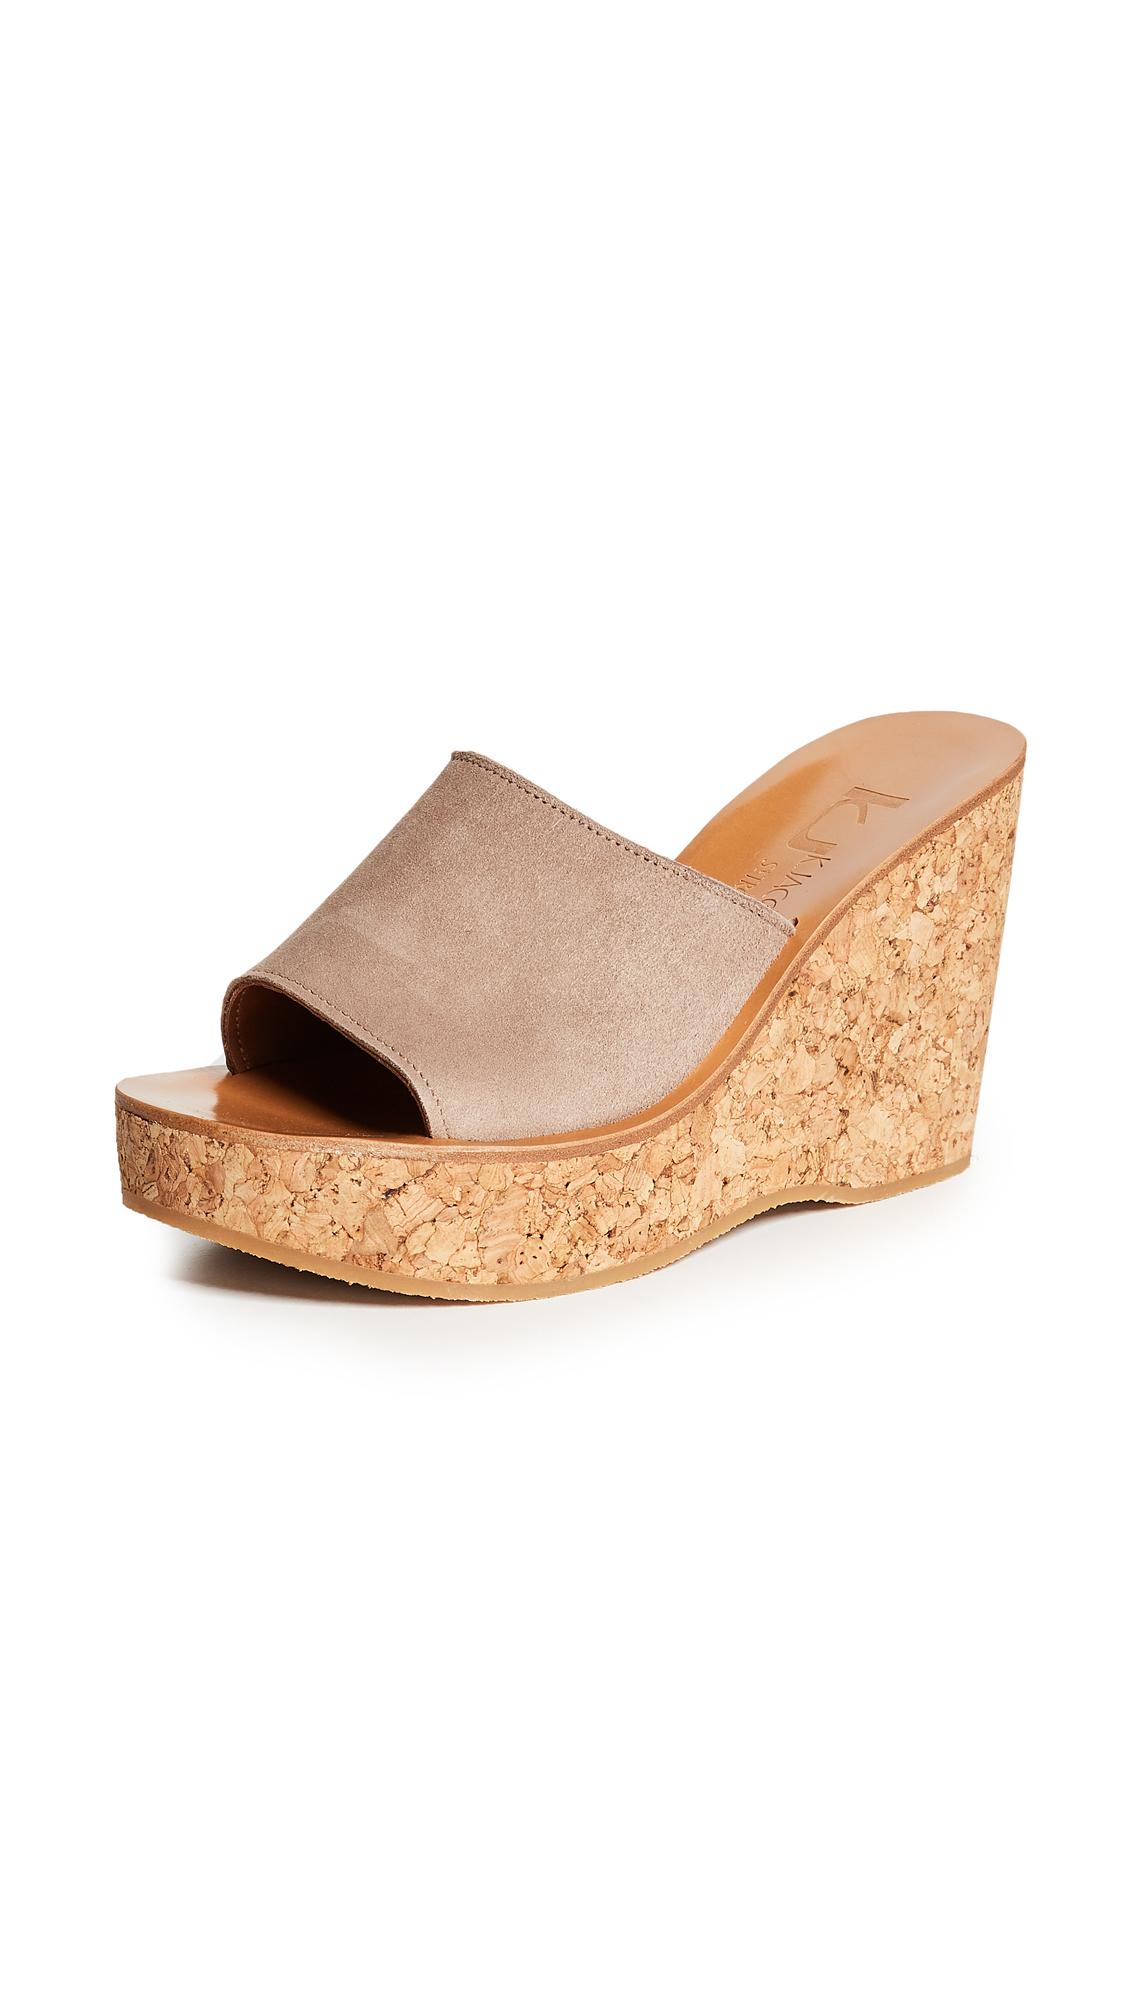 K. Jacques Timor Wedge Sandals - Velours Luxor